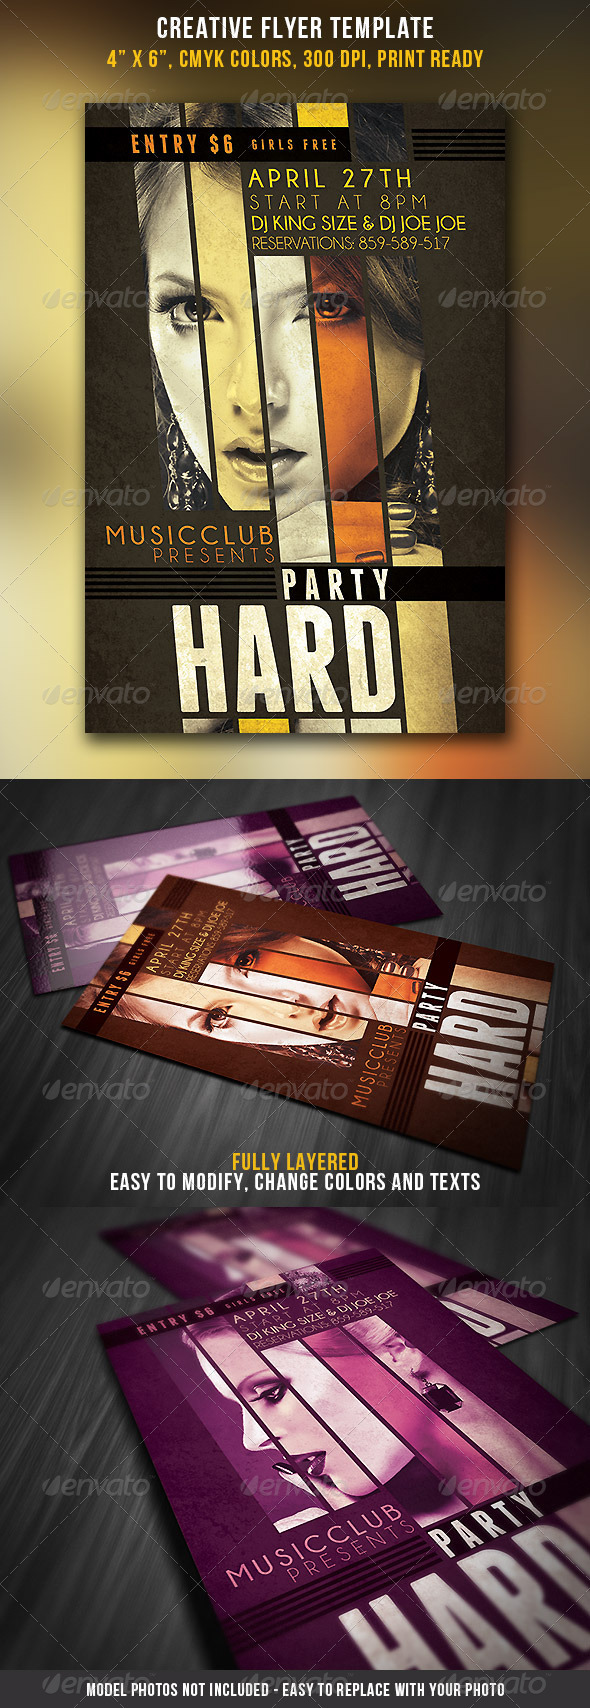 Creative Flyer Template - Events Flyers